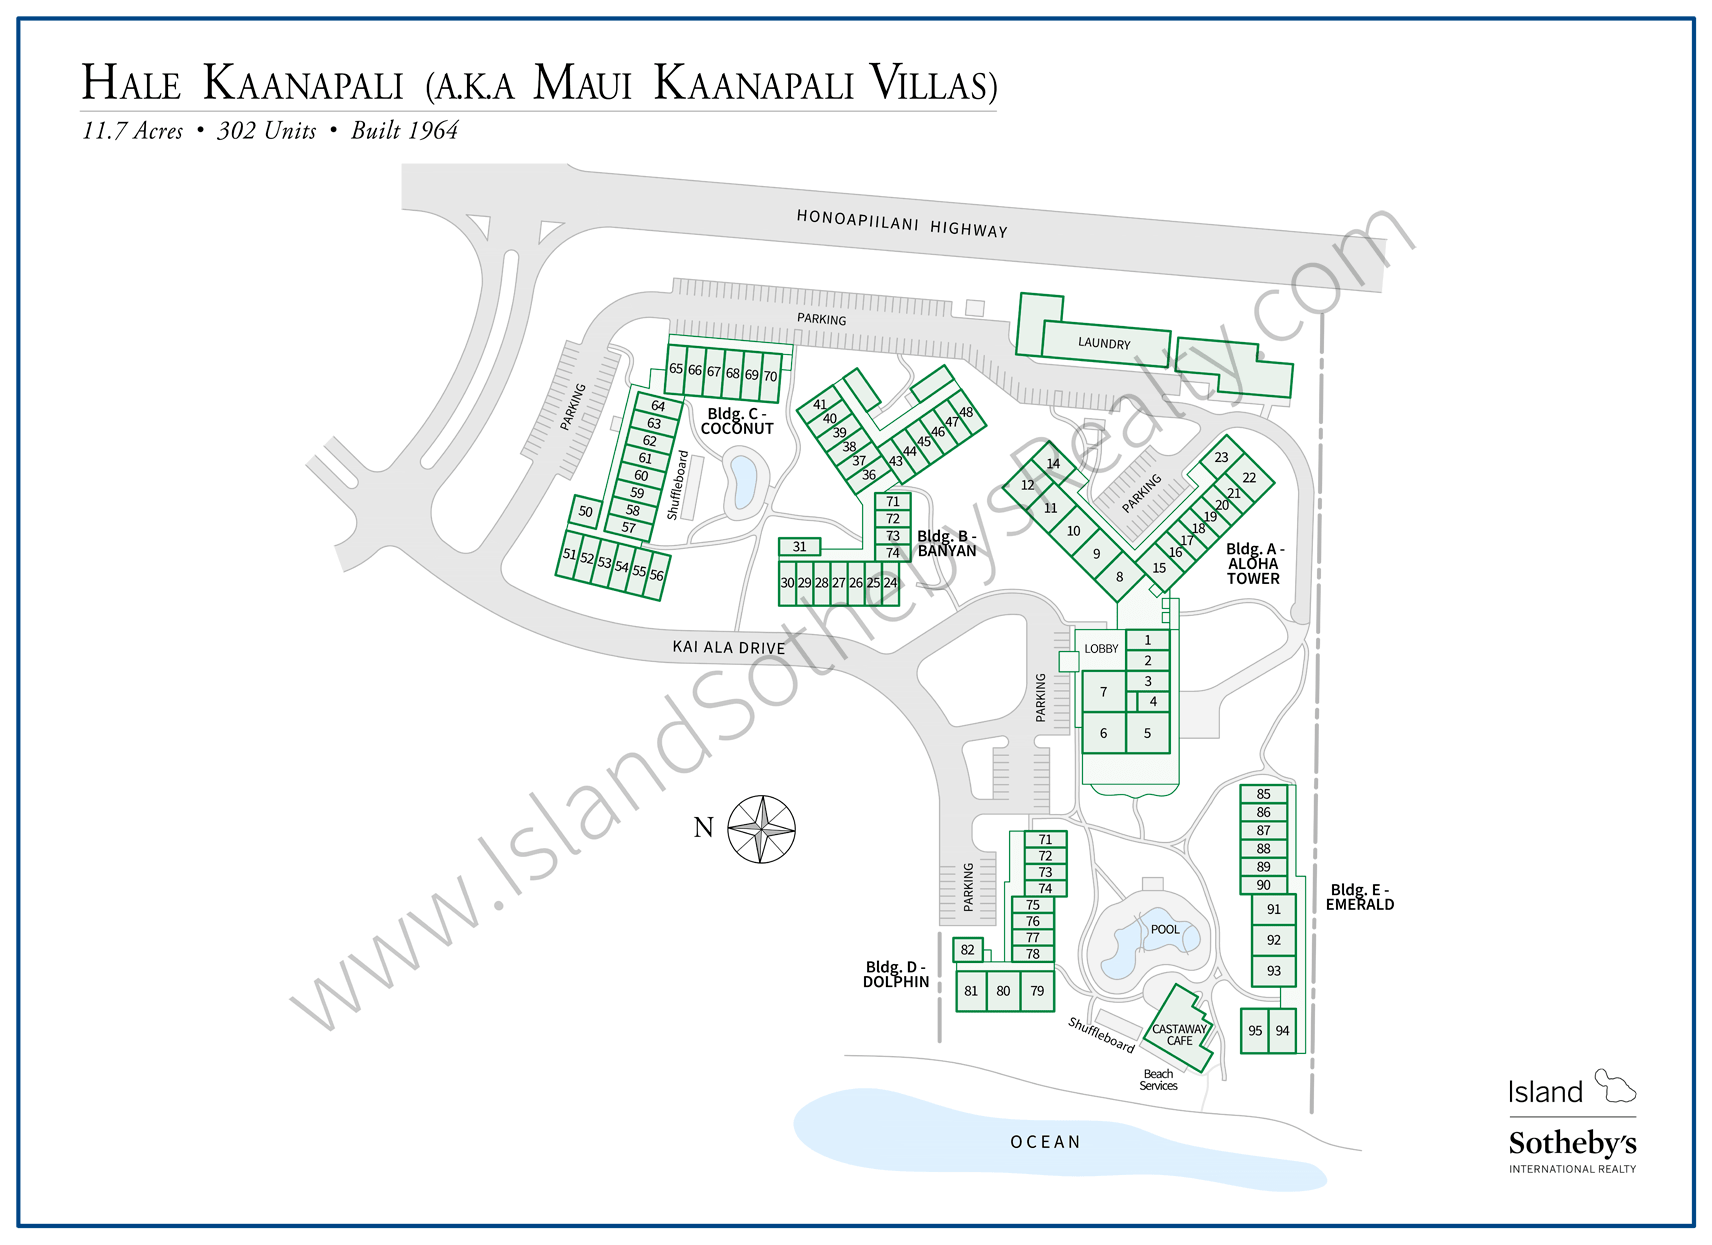 Hale Kaanapali Map